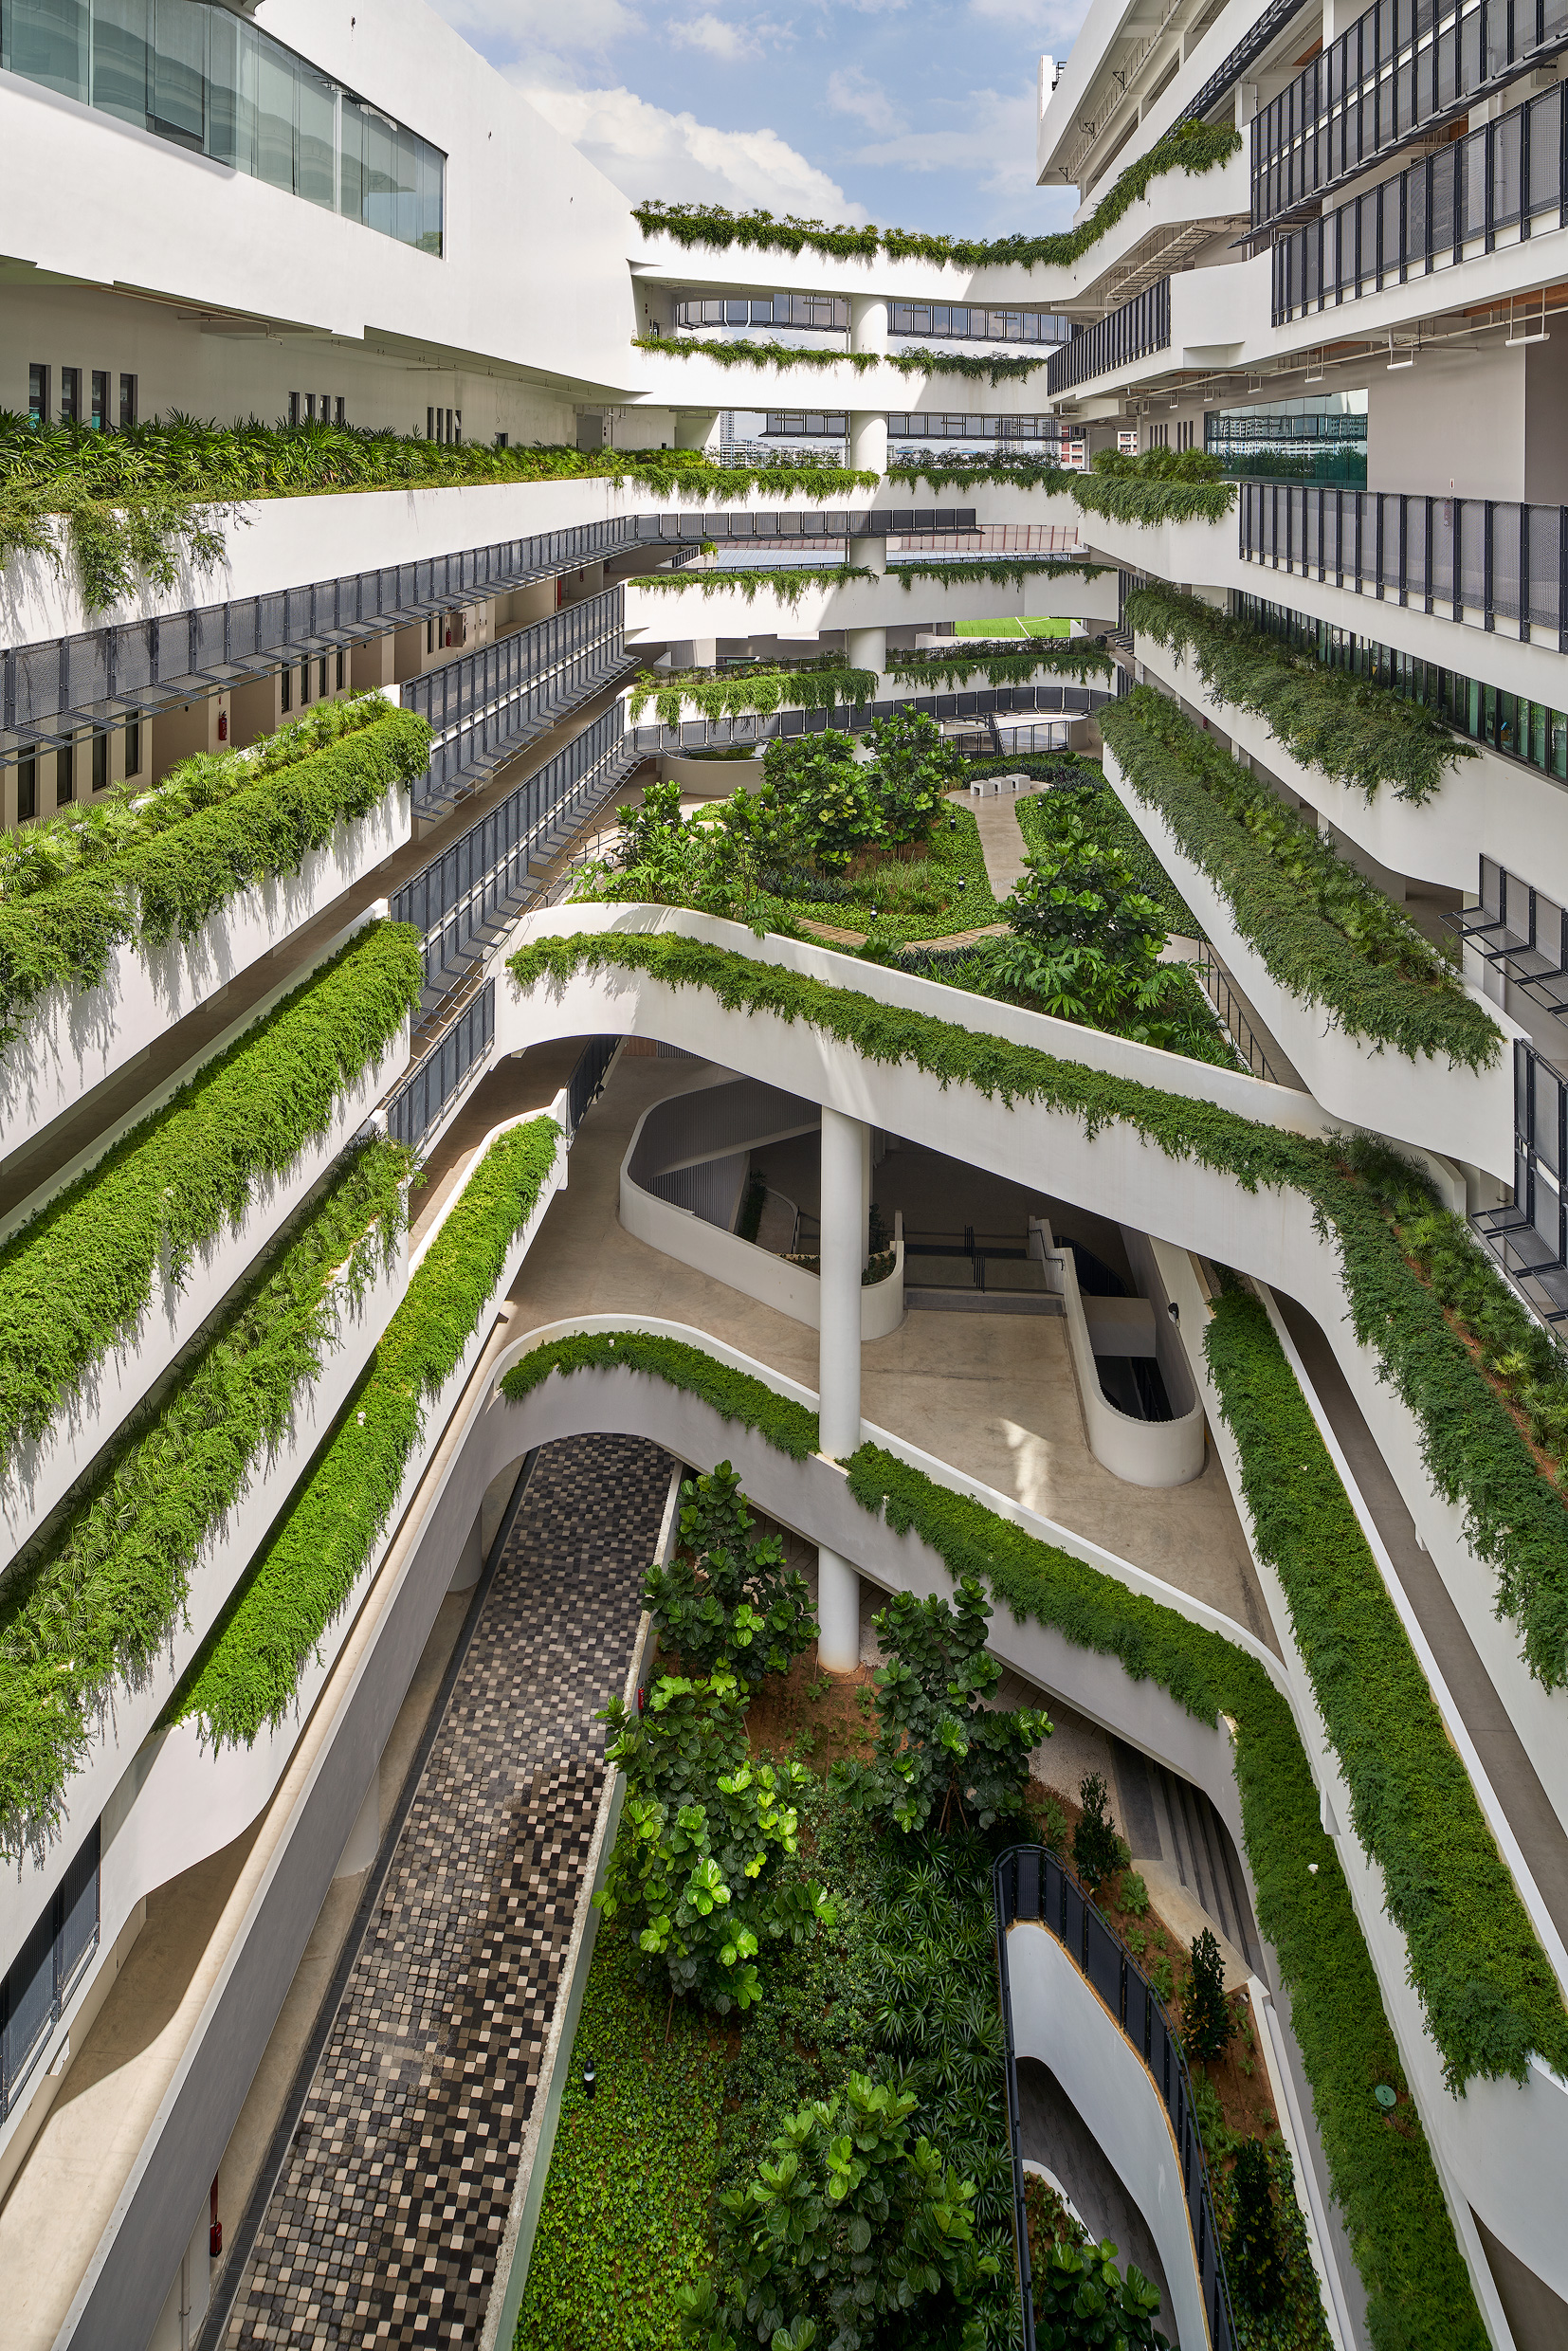 Multiple floors interwoven with greenery offer easy accessibility